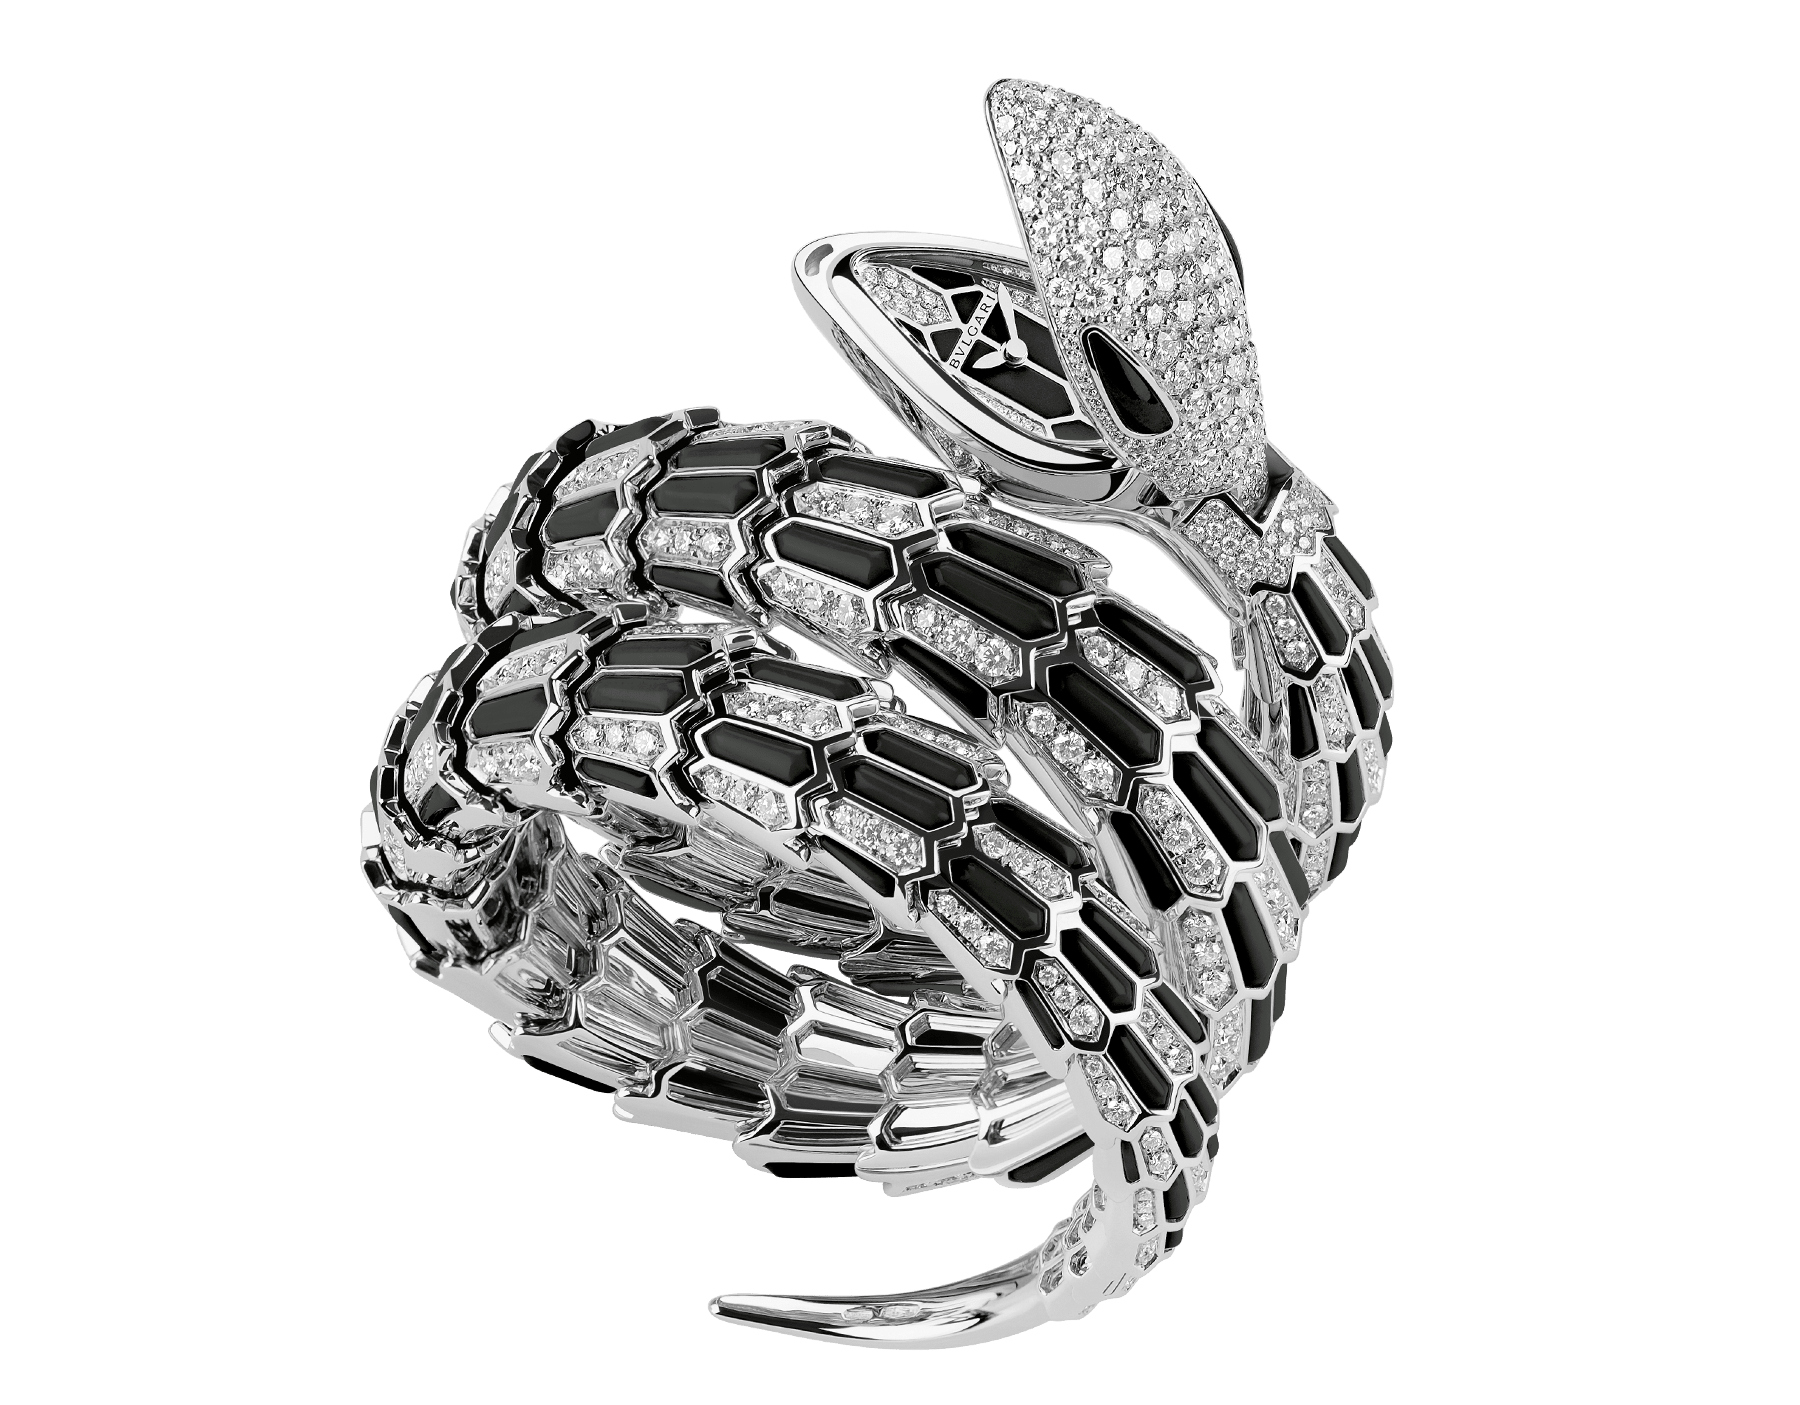 Serpenti Secret Watch with 18 kt white gold head set with brilliant cut diamonds and onyx eyes, 18 kt white gold case, 18 kt white gold dial and double spiral bracelet, both set with brilliant cut diamonds and onyx. 102144 image 1